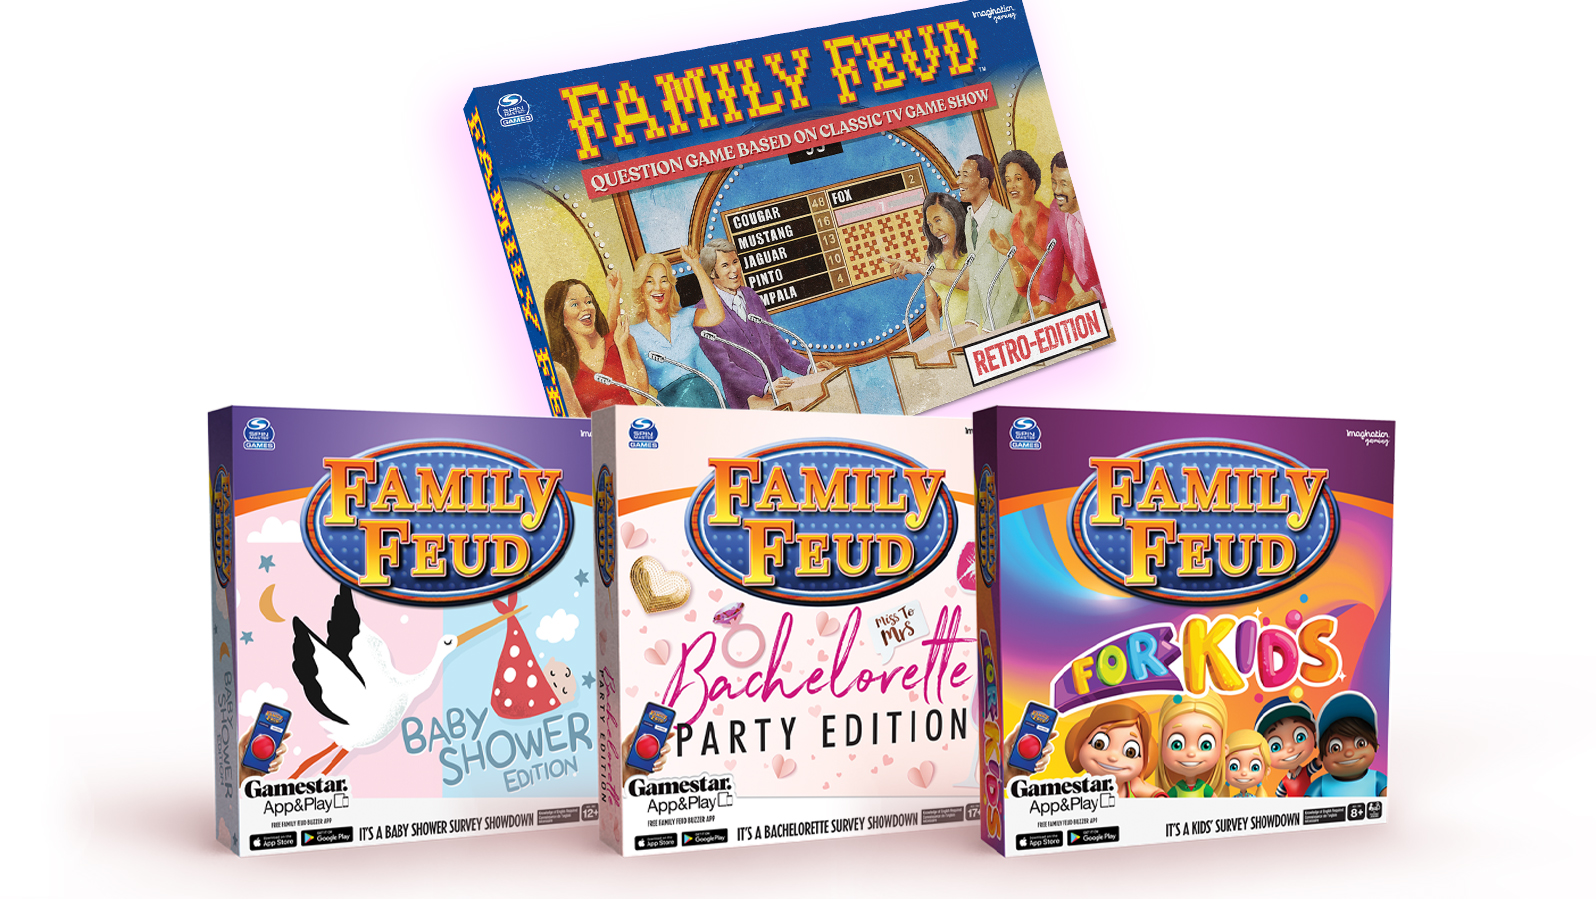 There really is a Family Feud for everyone this holiday season!